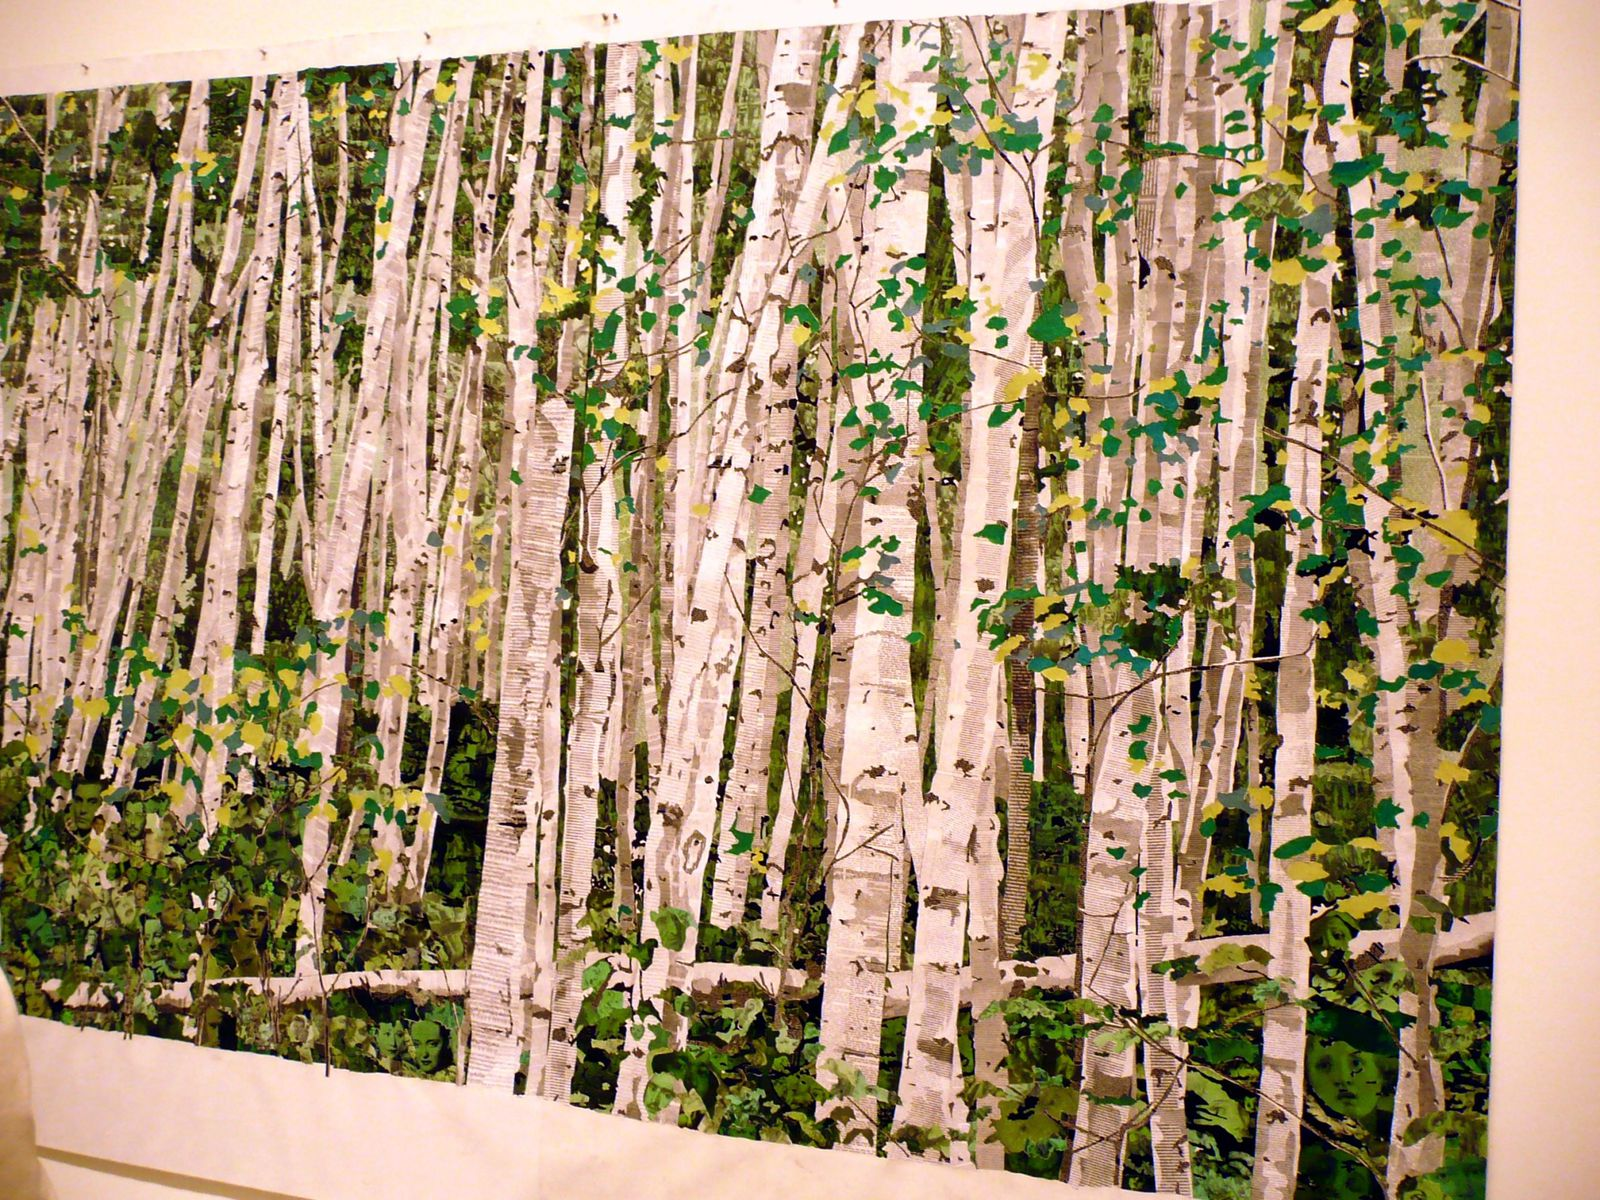 MoMa---You-can-t-see-the-forest-for-the-